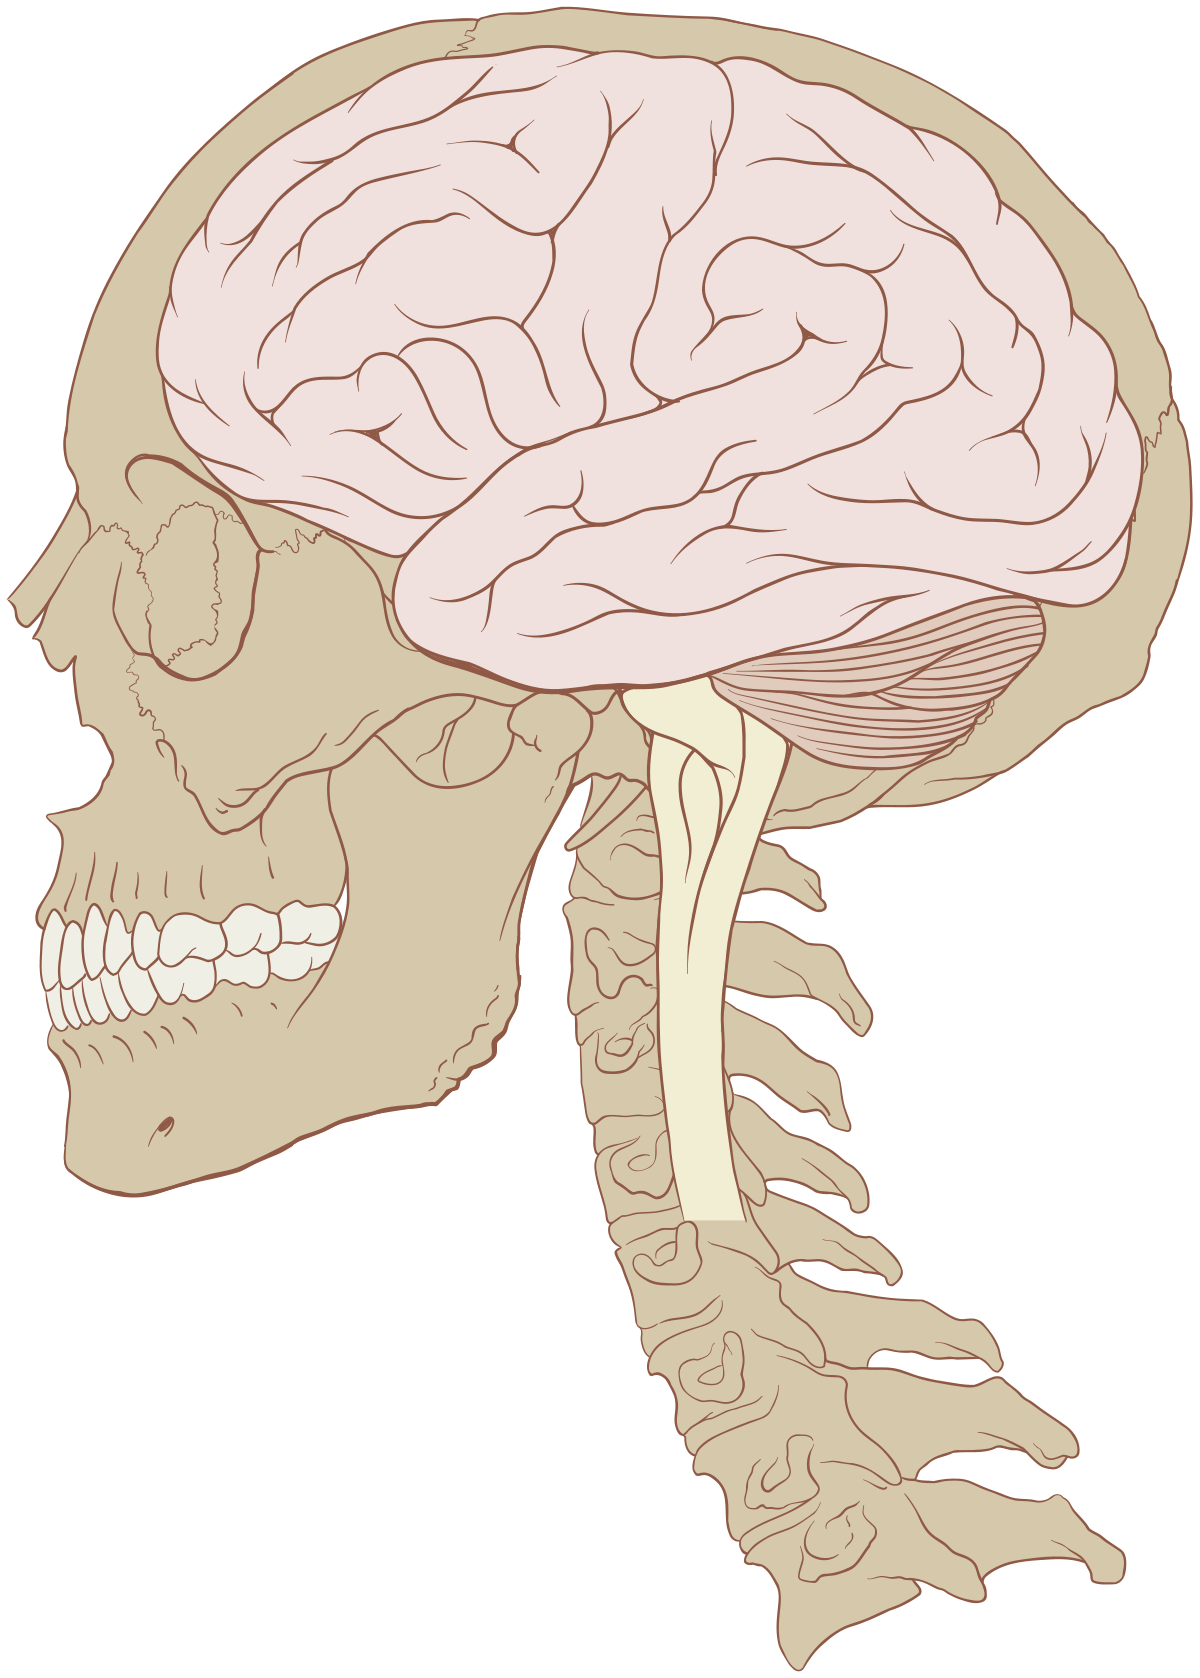 Human wikipedia . Drawing injuries traumatic brain banner royalty free library